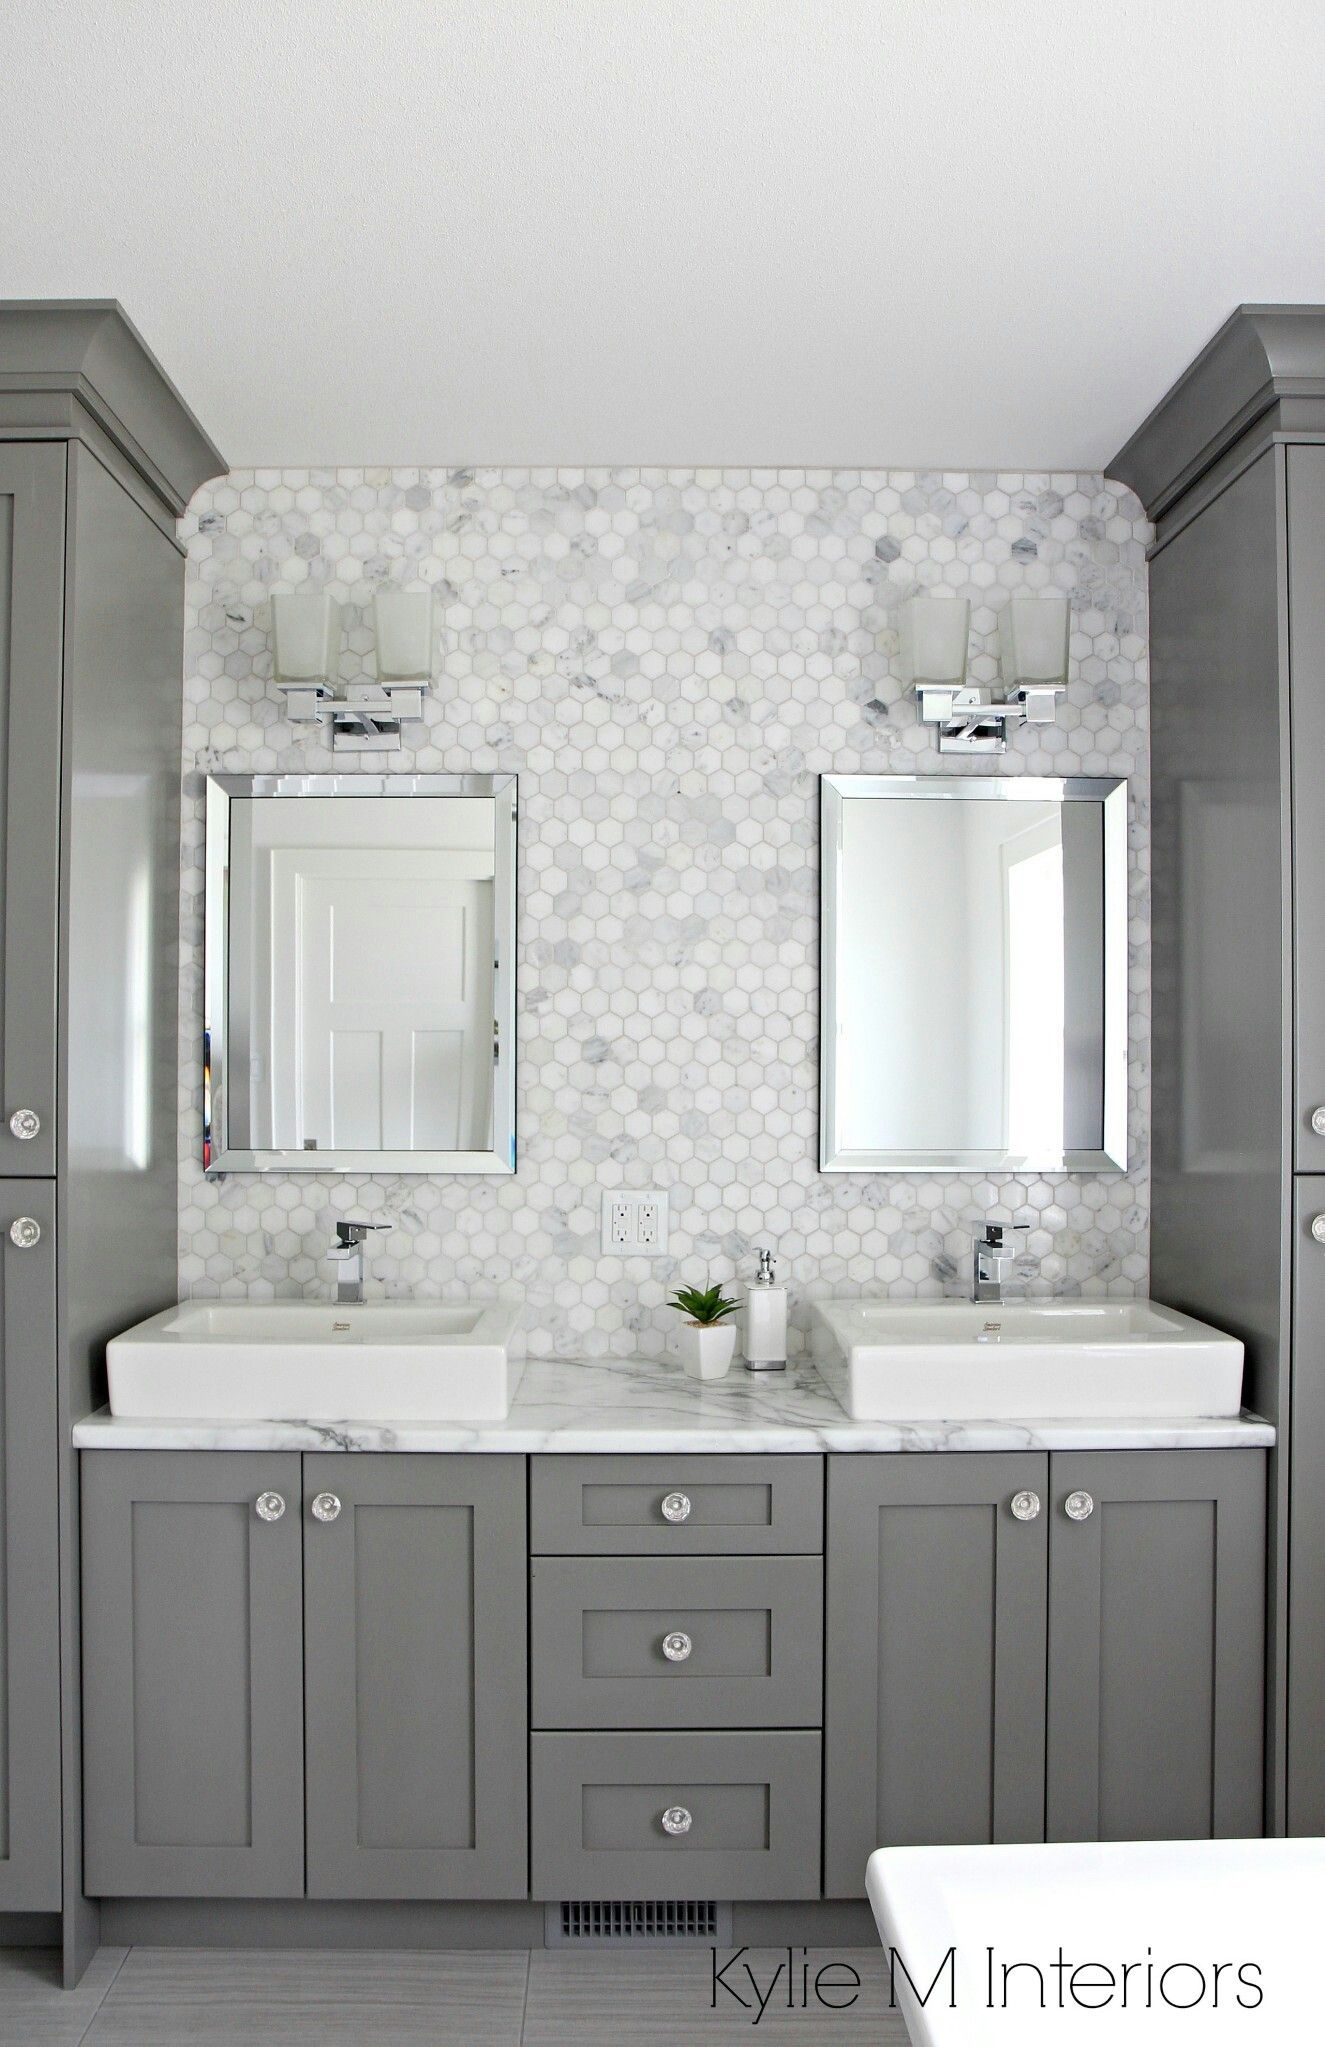 17 Diy Vanity Mirror Ideas To Make Your Room More Beautiful Diy